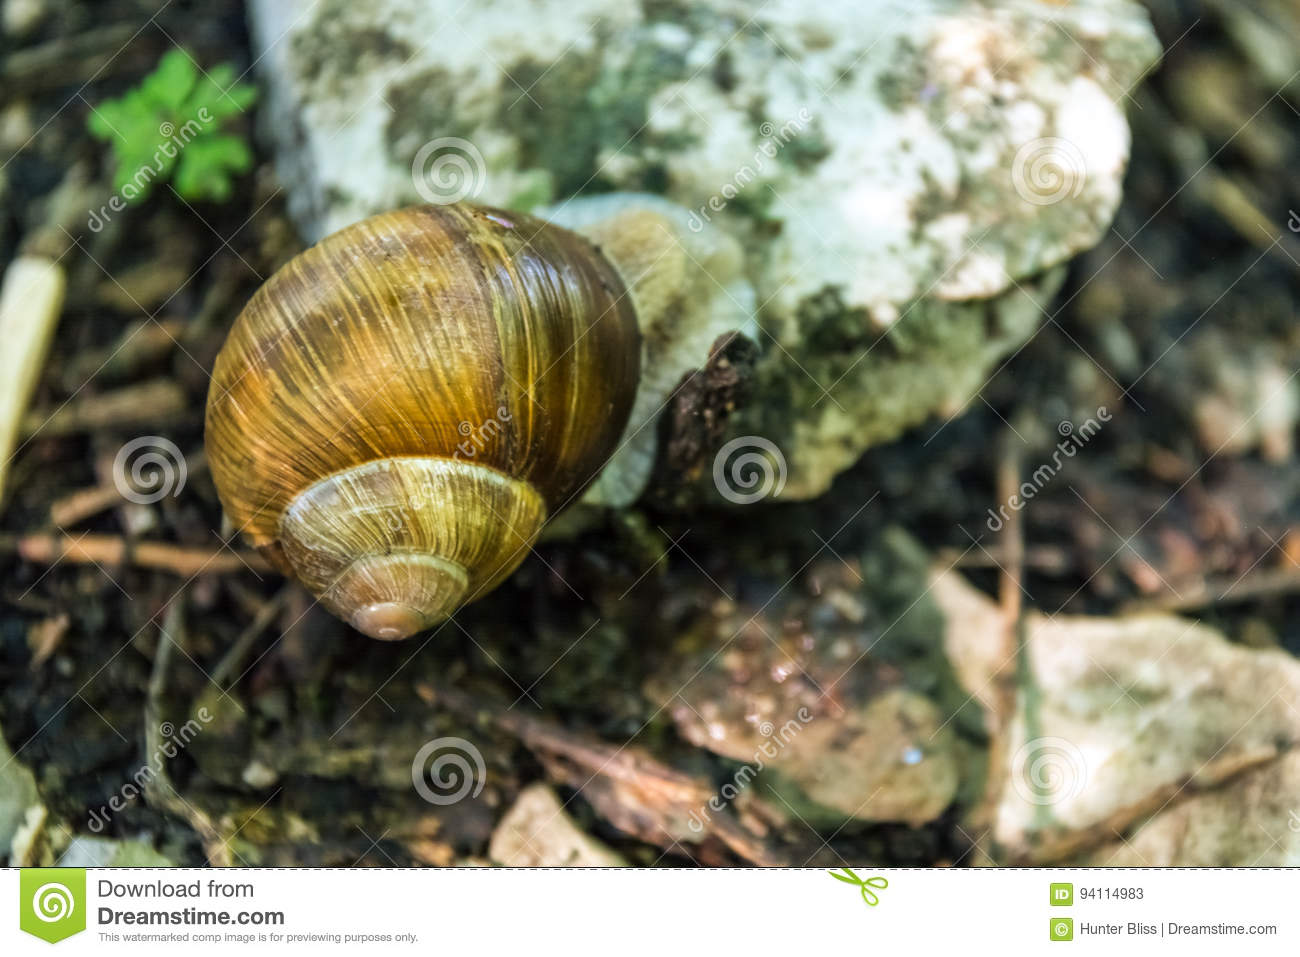 Keep your eyes open and on the right, you will see a smooth white wall maybe a meter and a half high. Snigeln Lilla Shell Forest Floor Nature Creature Animal Vaggar Resti Fotografering For Bildbyraer Bild Av Reflexion Makro 94114983